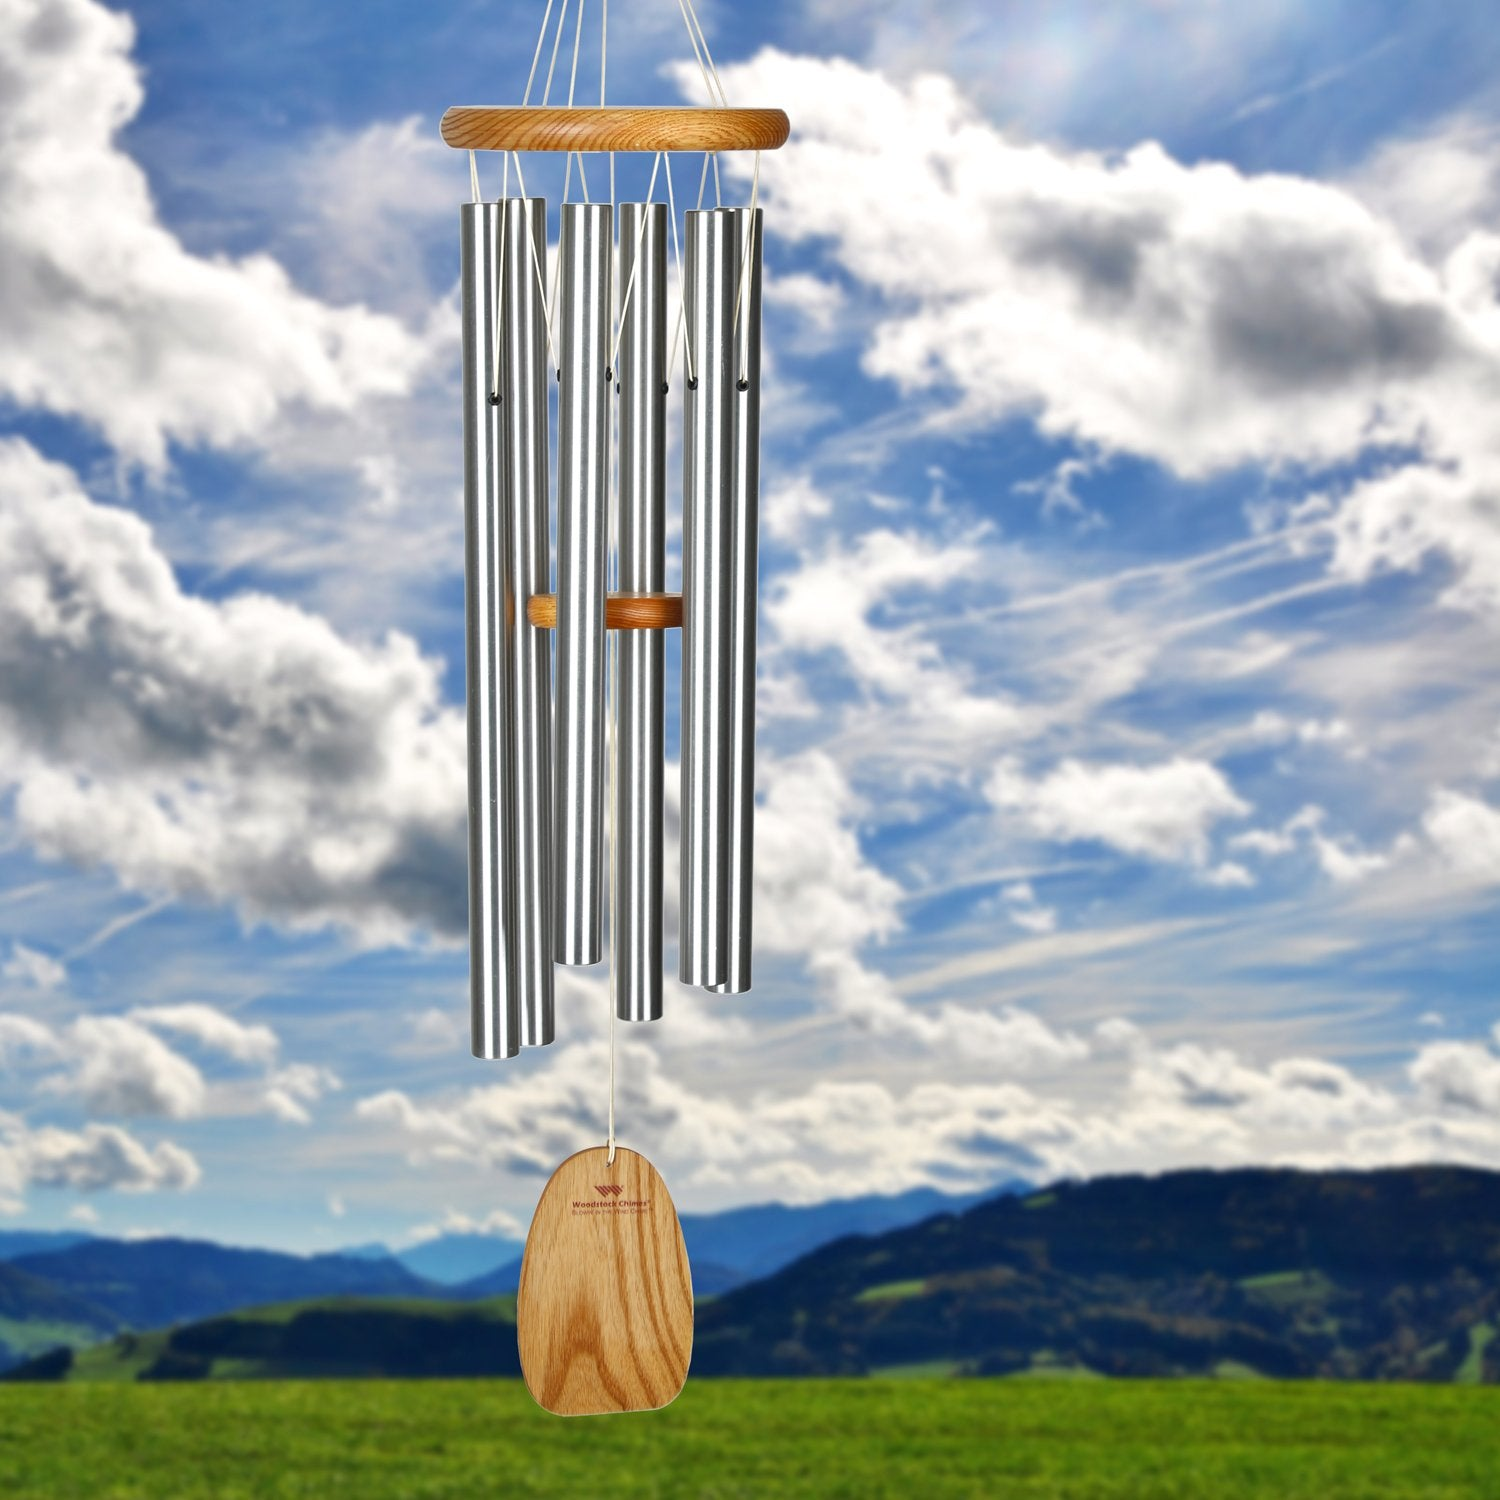 Blowin' In The Wind Chime lifestyle image